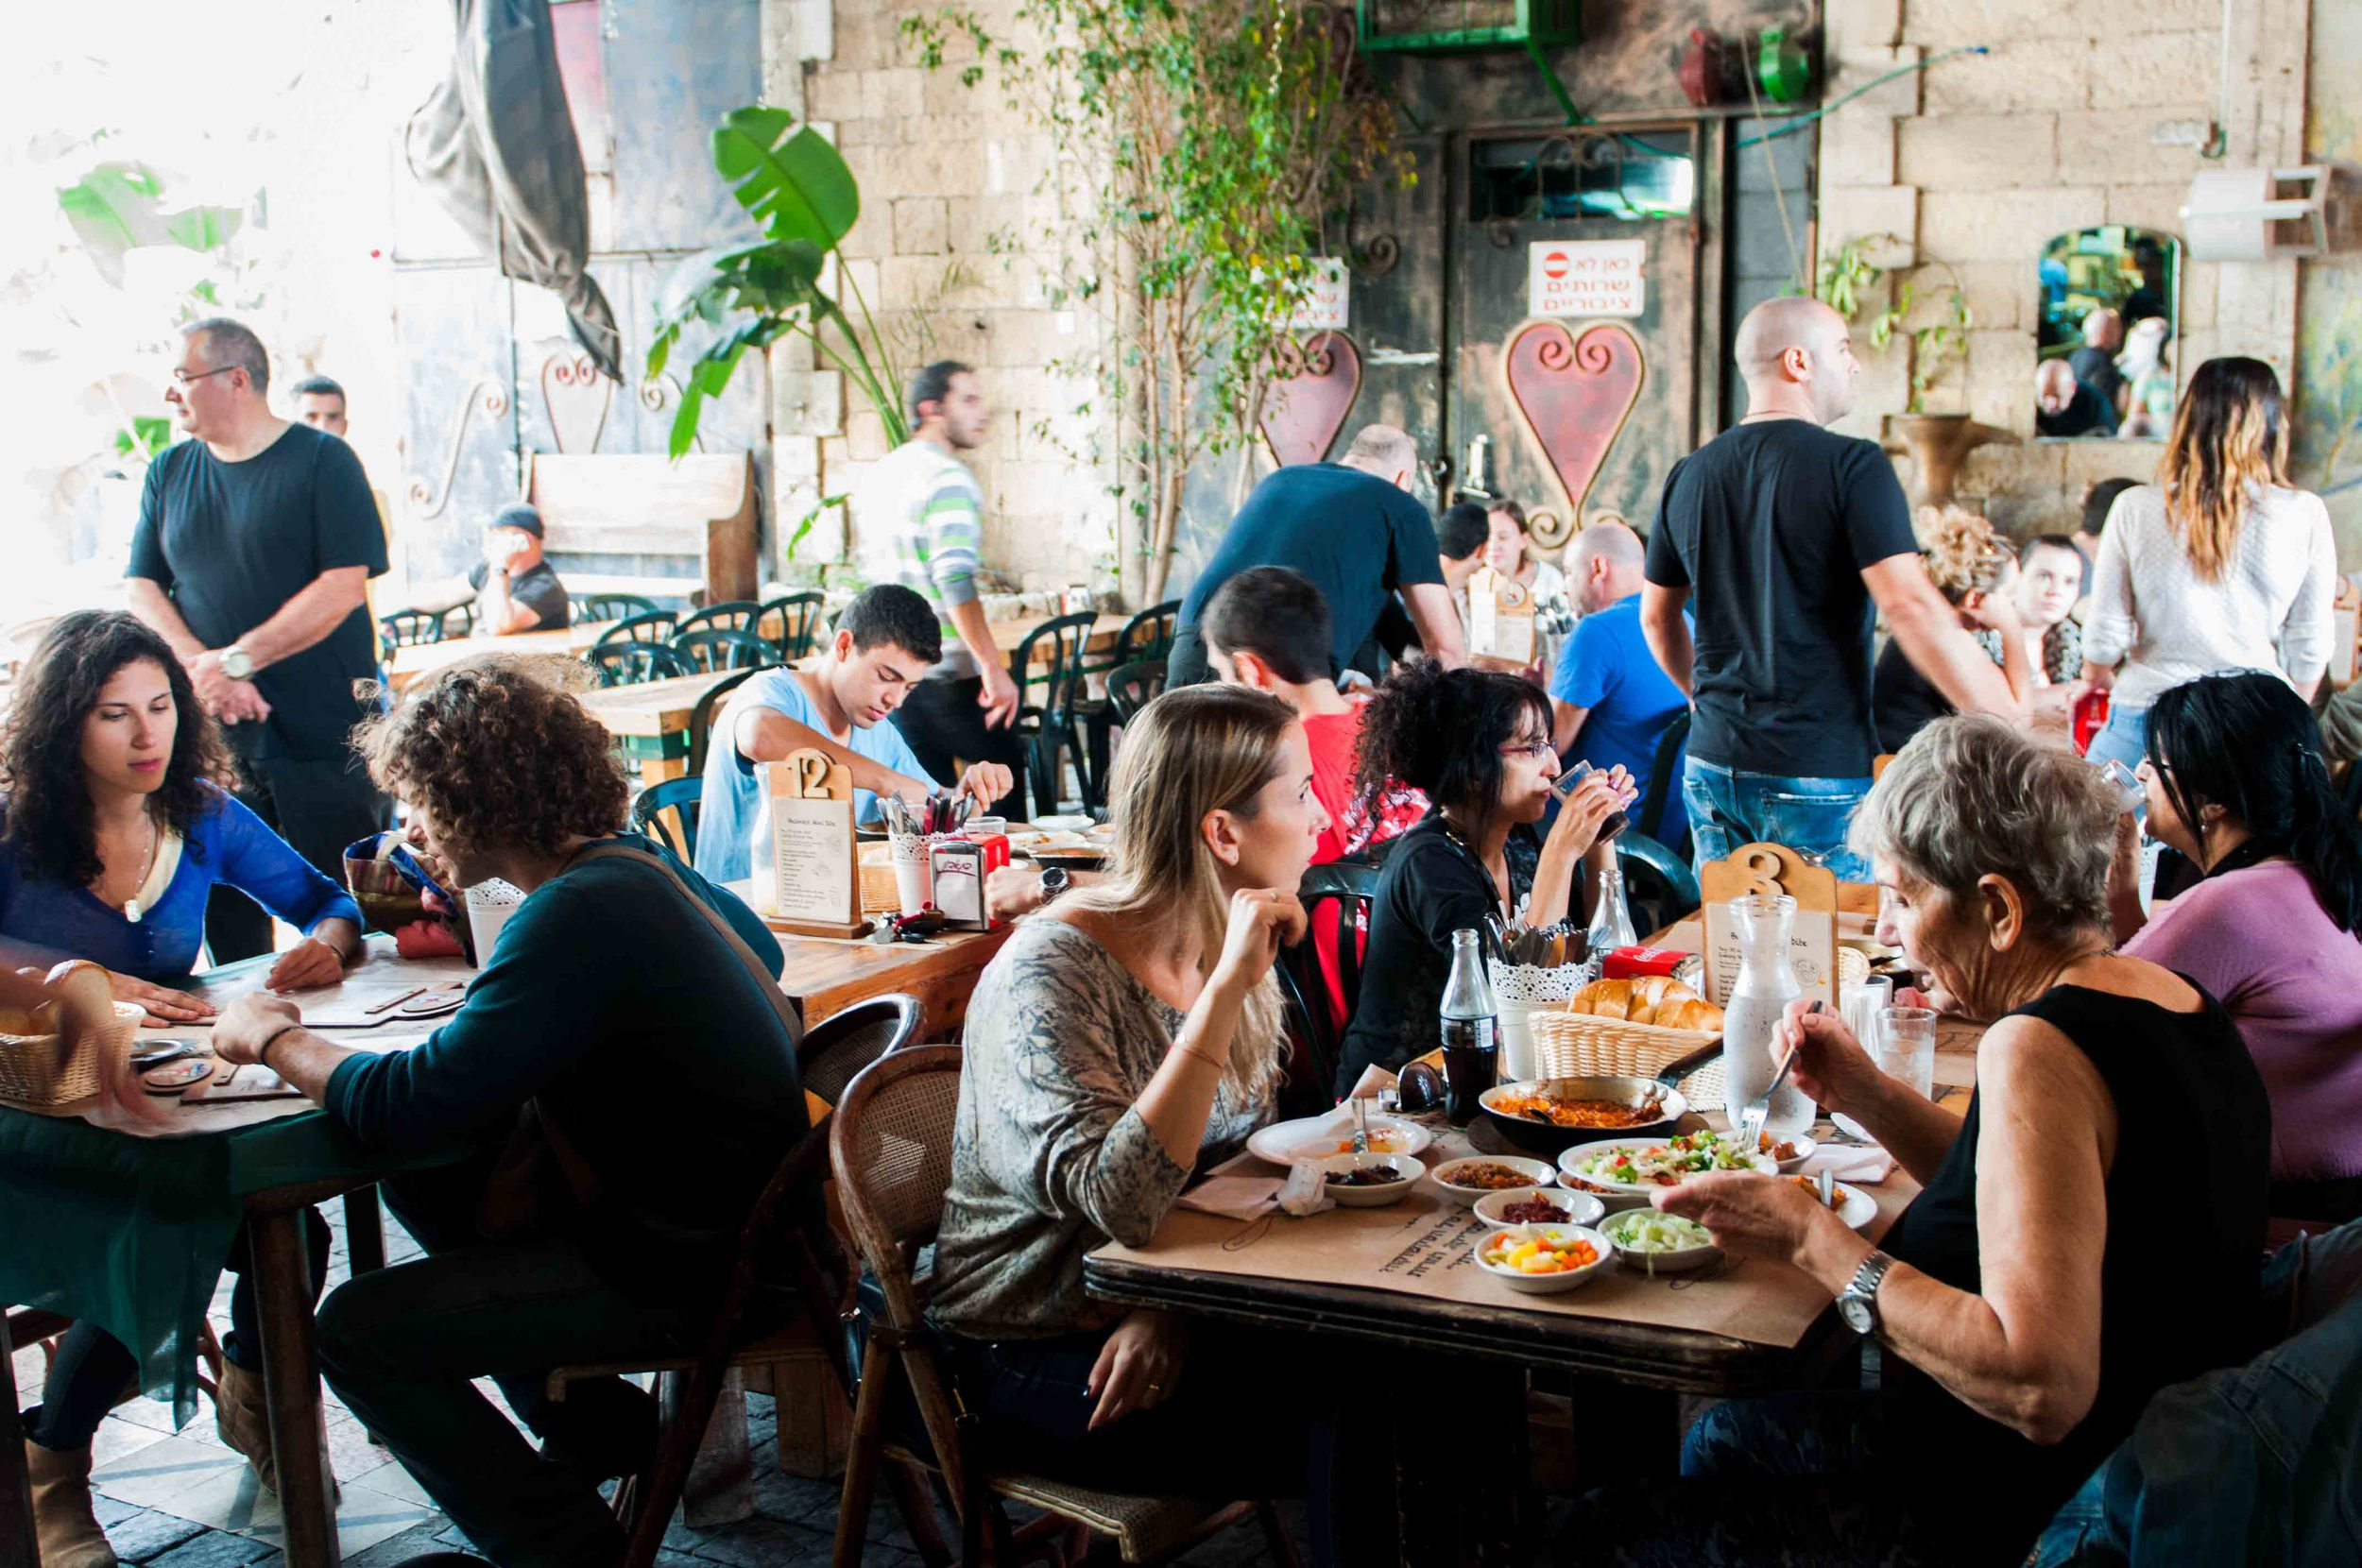 Tel Aviv has a culture of eating out, having fun, socializing and in general, living life to the full. People are out at all times of the day and night.